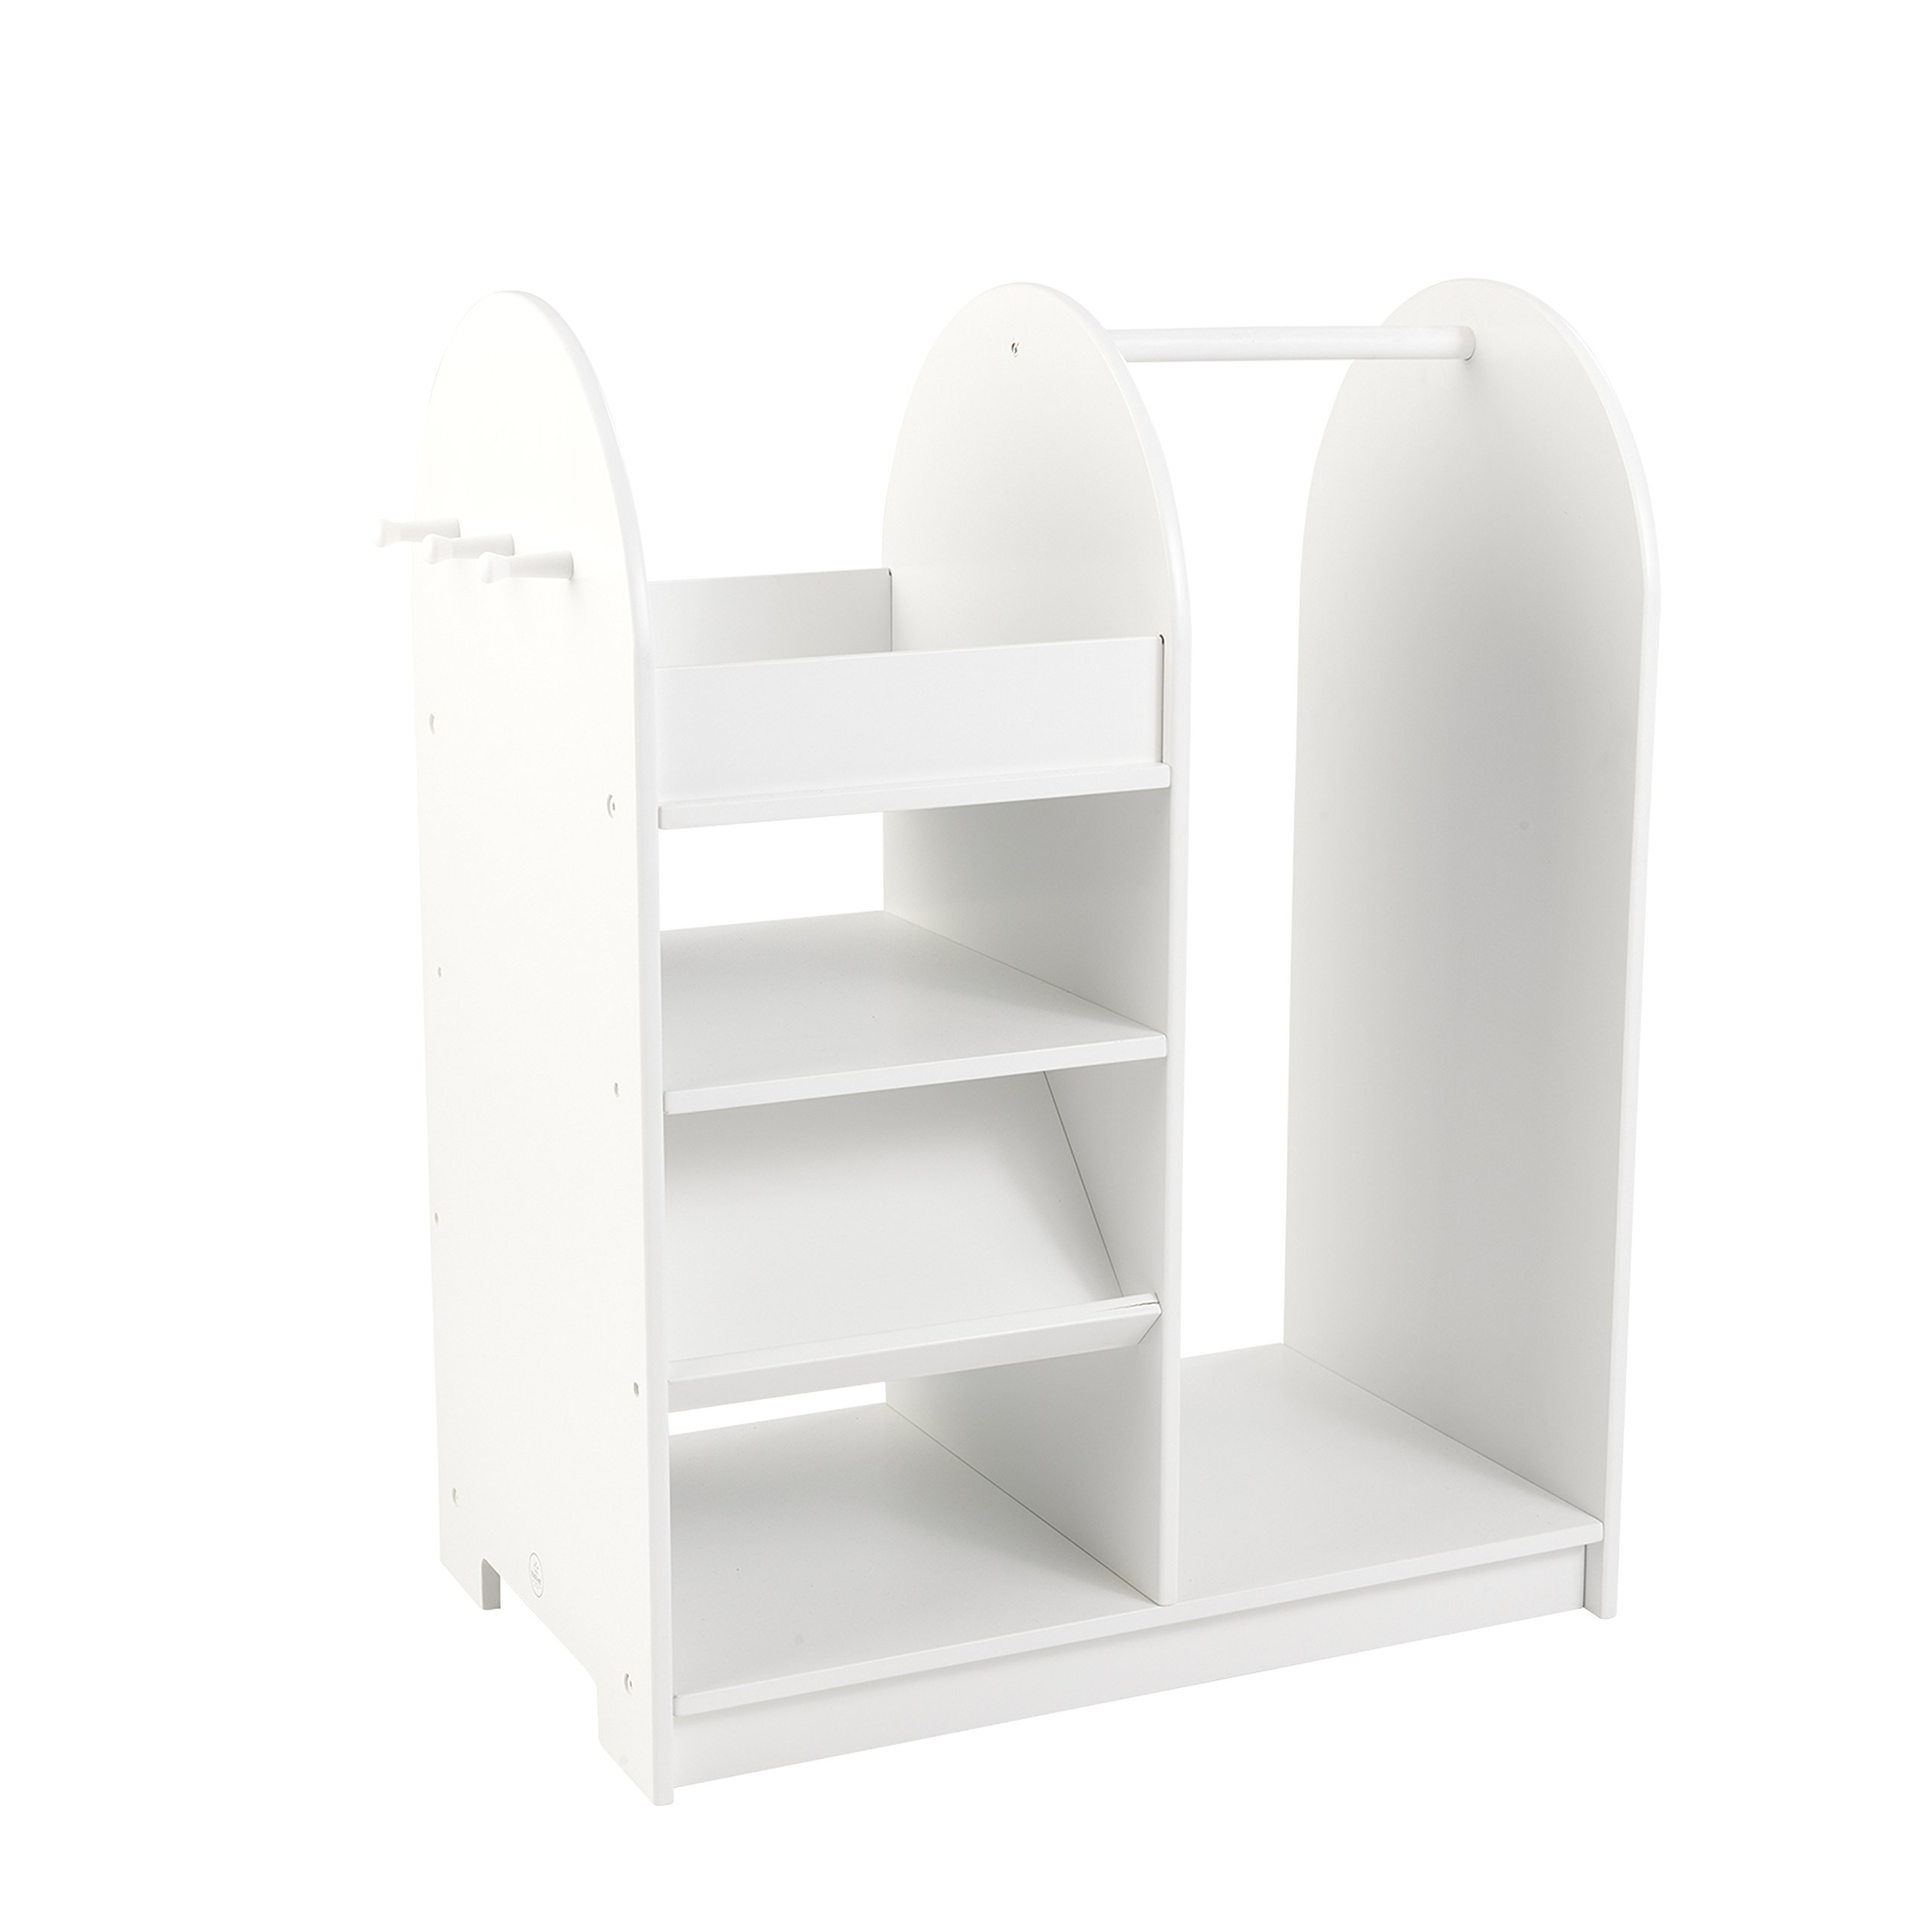 For Kids Only, Inc. KidKraft Fashion Pretend Station White by Kid Kraft